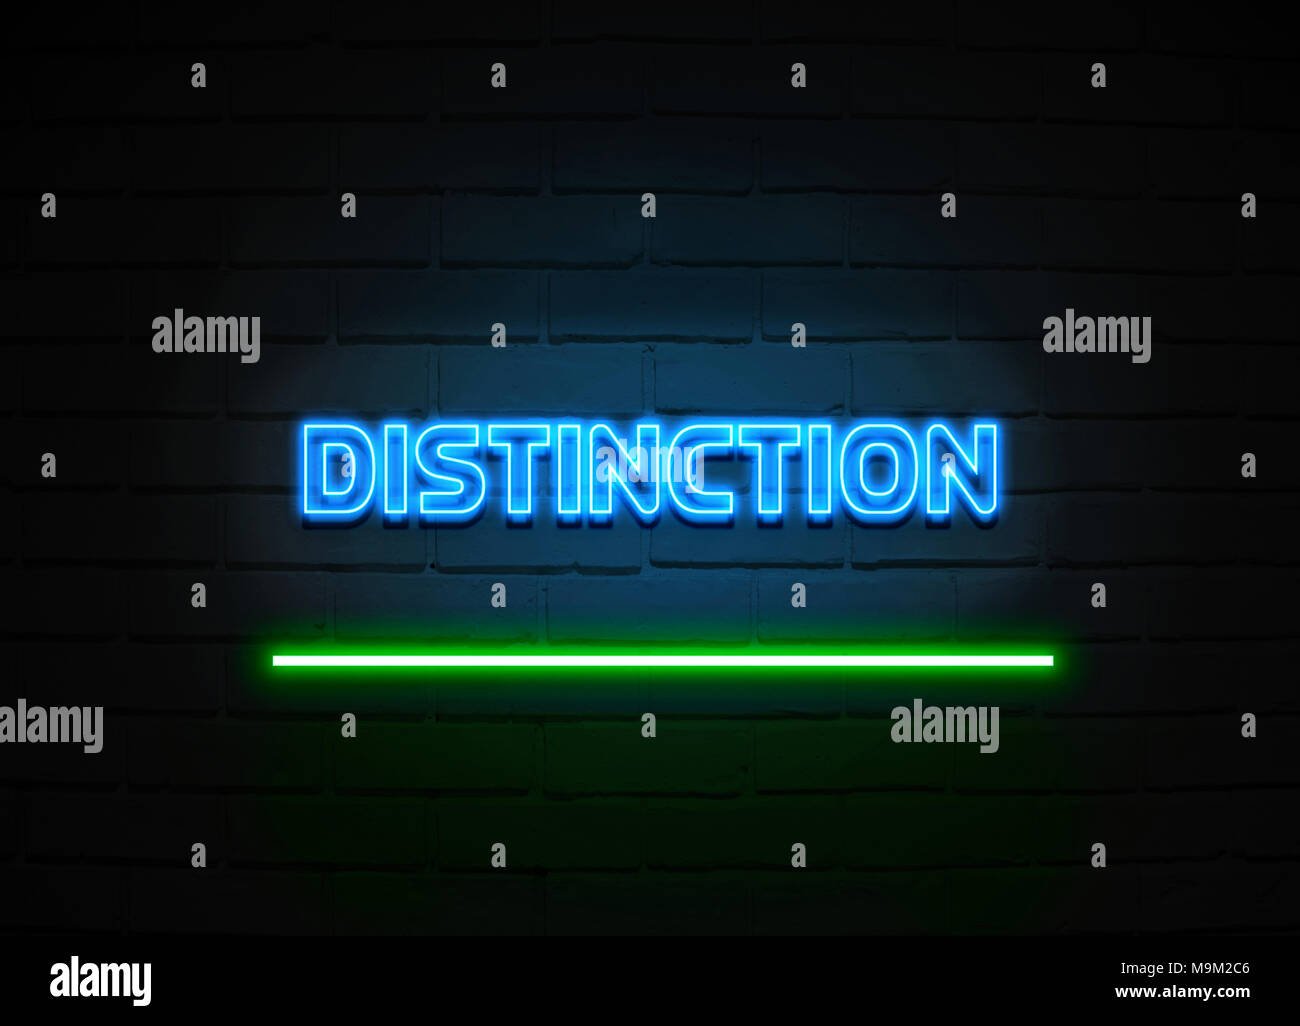 Distinction neon sign - Glowing Neon Sign on brickwall wall - 3D rendered royalty free stock illustration. - Stock Image